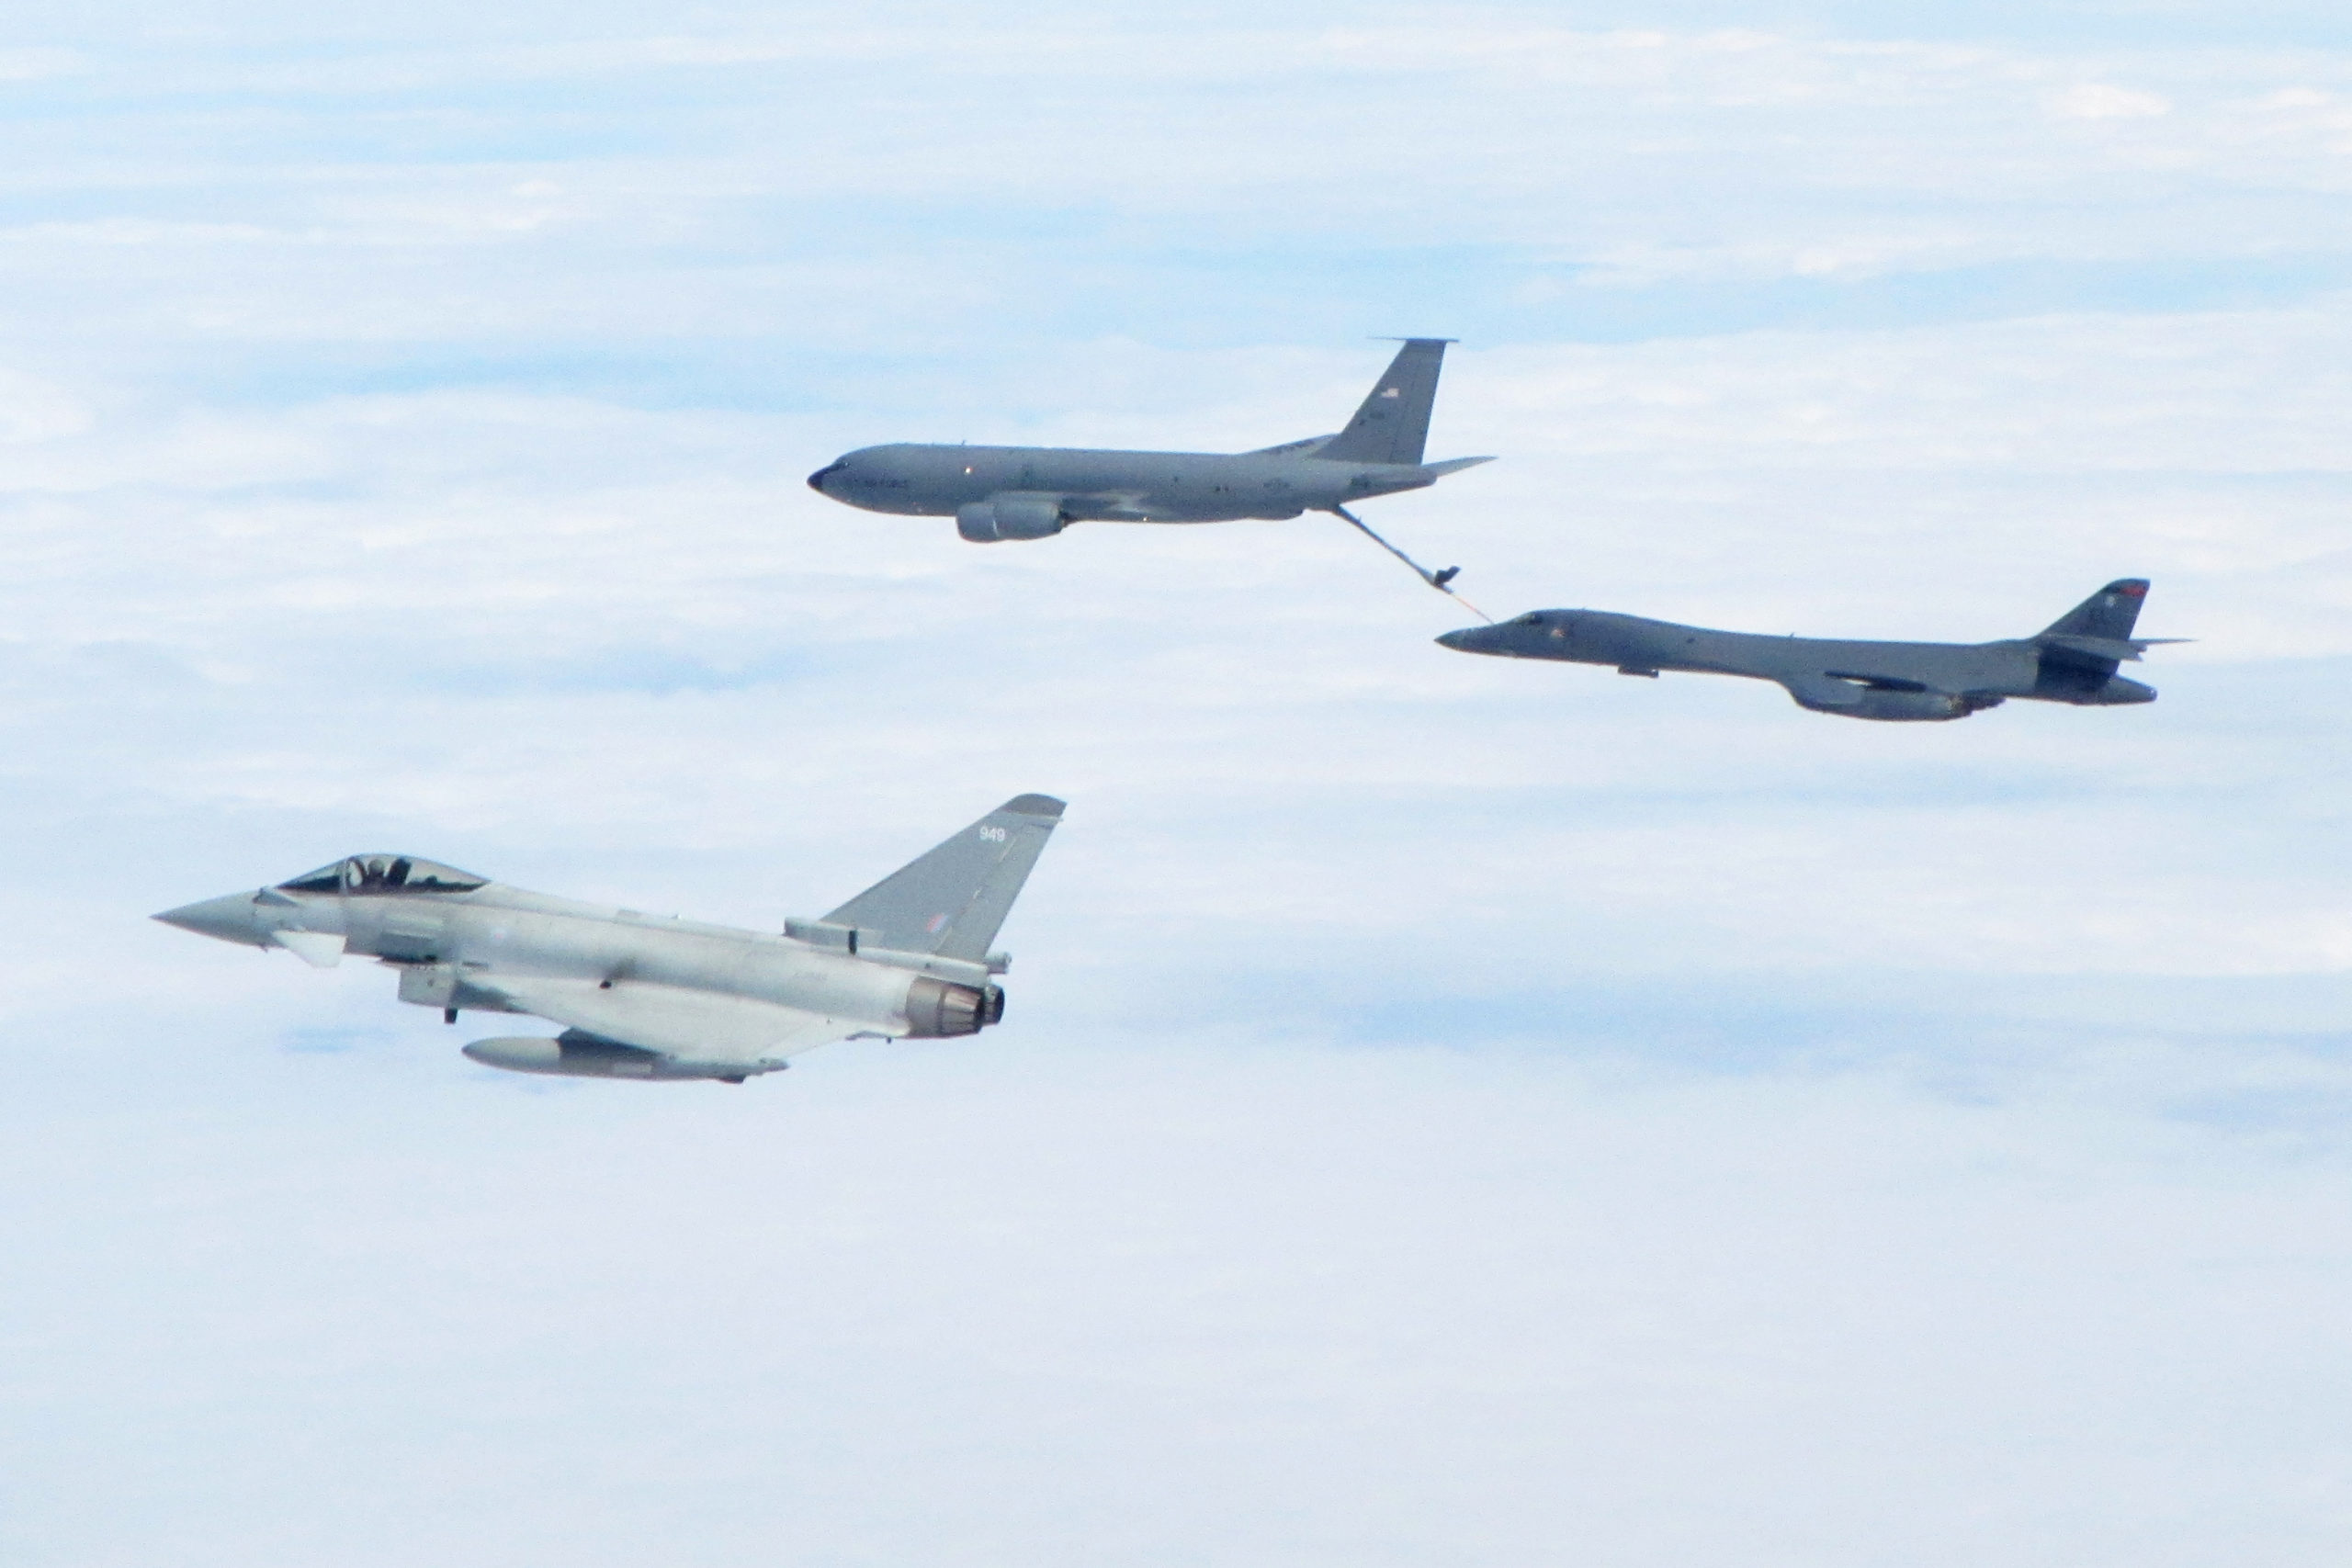 1 (F) Squadron Typhoons, based at RAF Lossiemouth, escorted a B-1B Lancer Bomber as it heads towards Denmark and Poland.